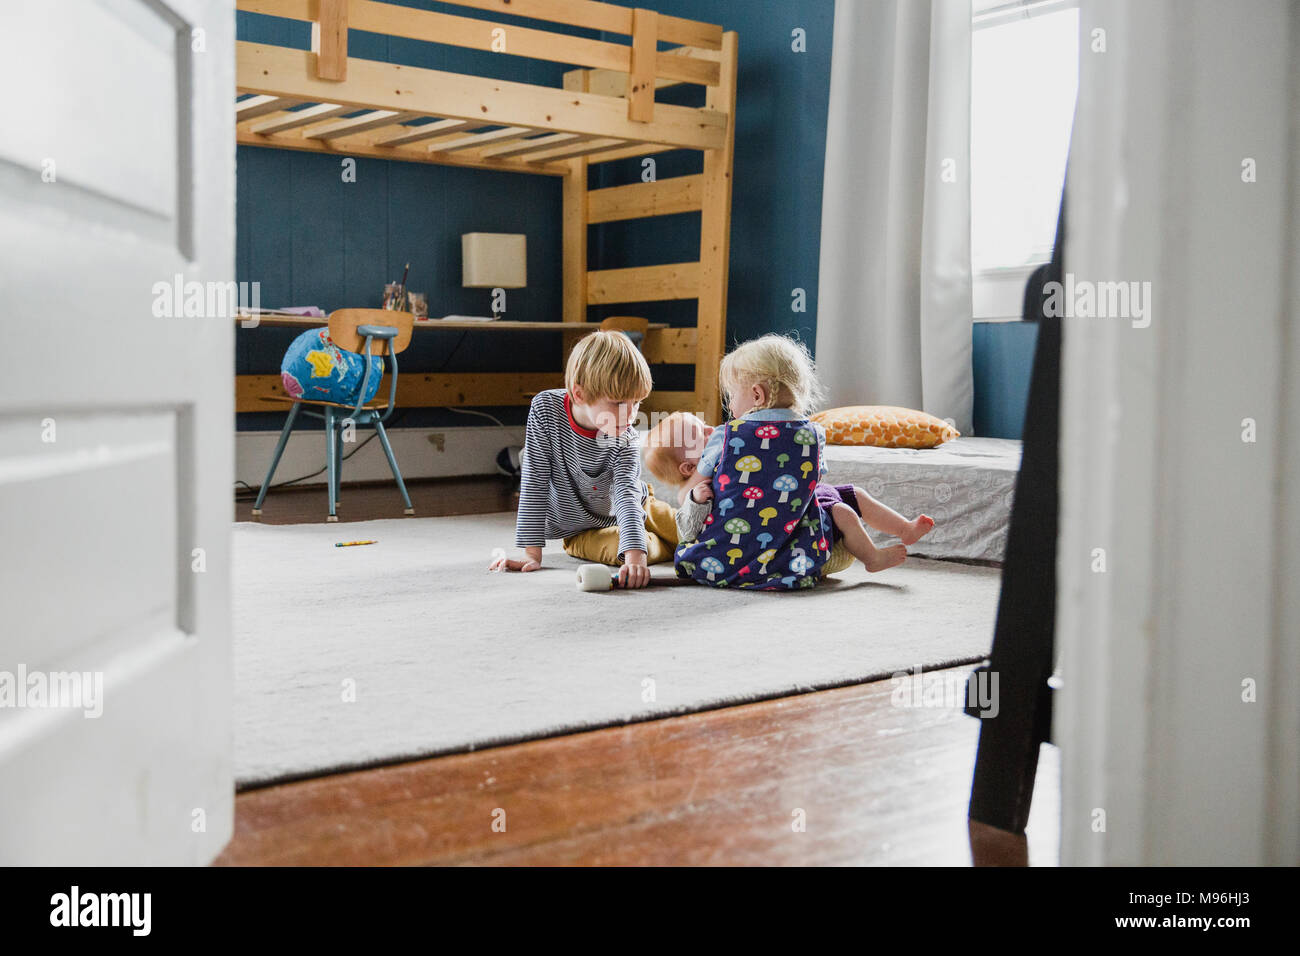 Two children and baby sitting in bedroom - Stock Image